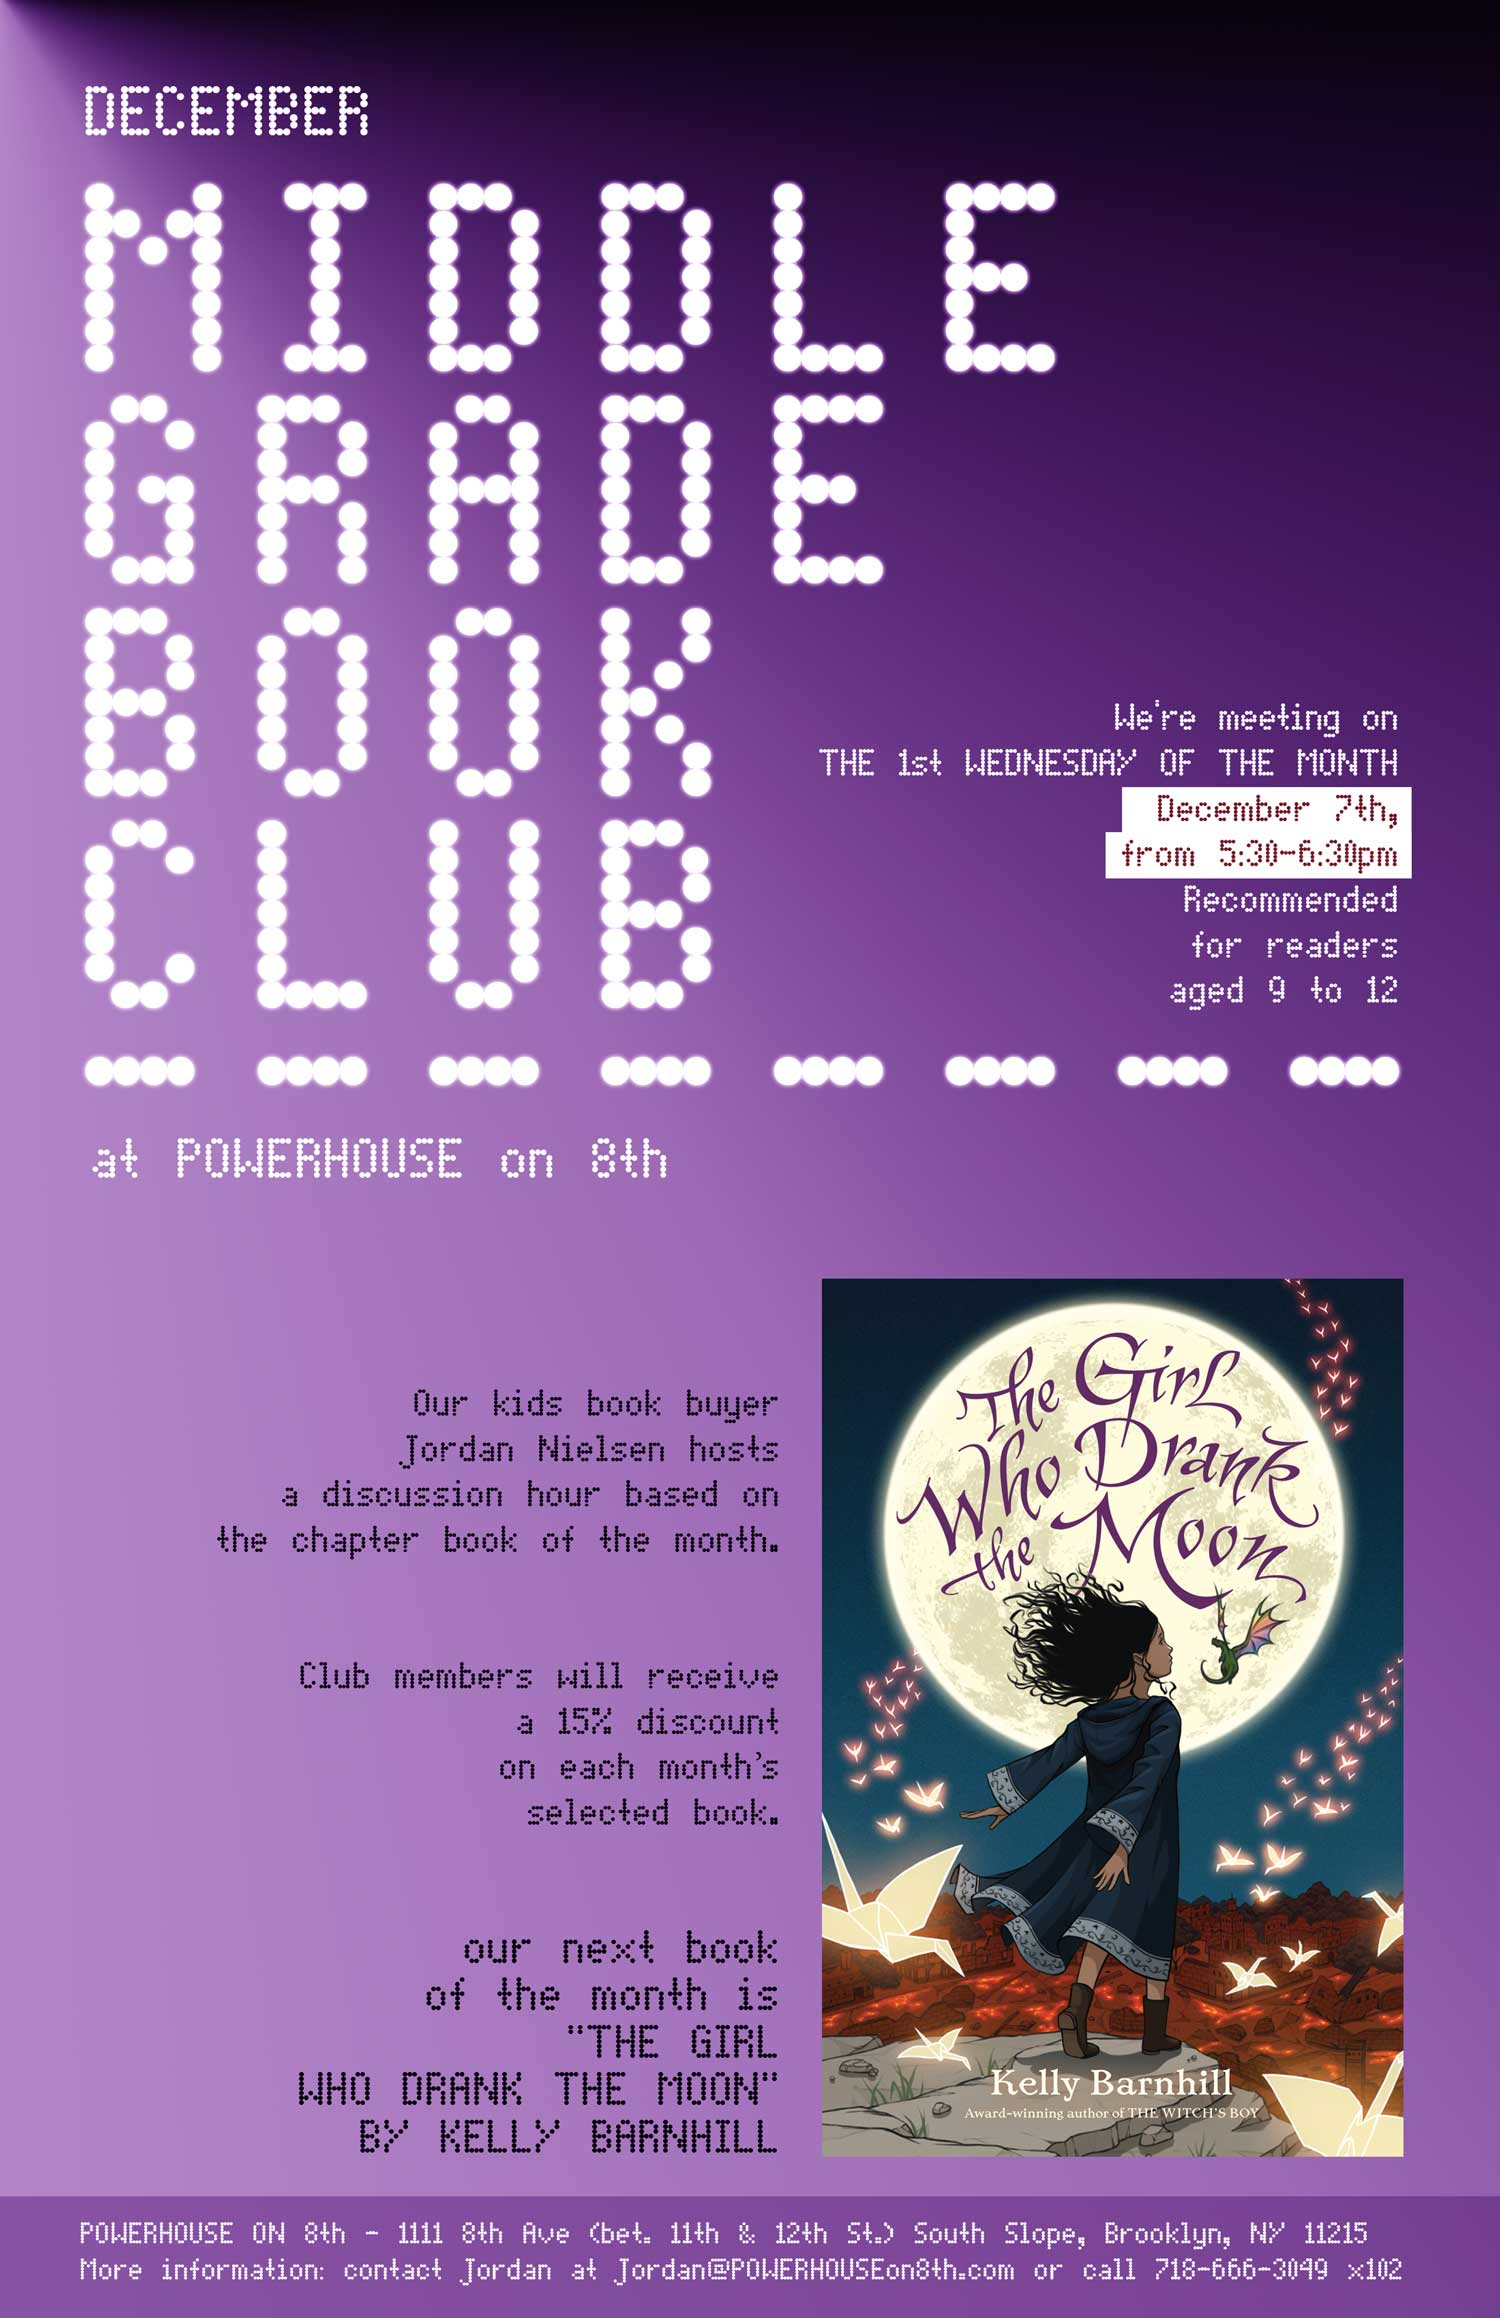 Middle Grade Book Club: The Girl Who Drank the Moon by Kelly Barnhill